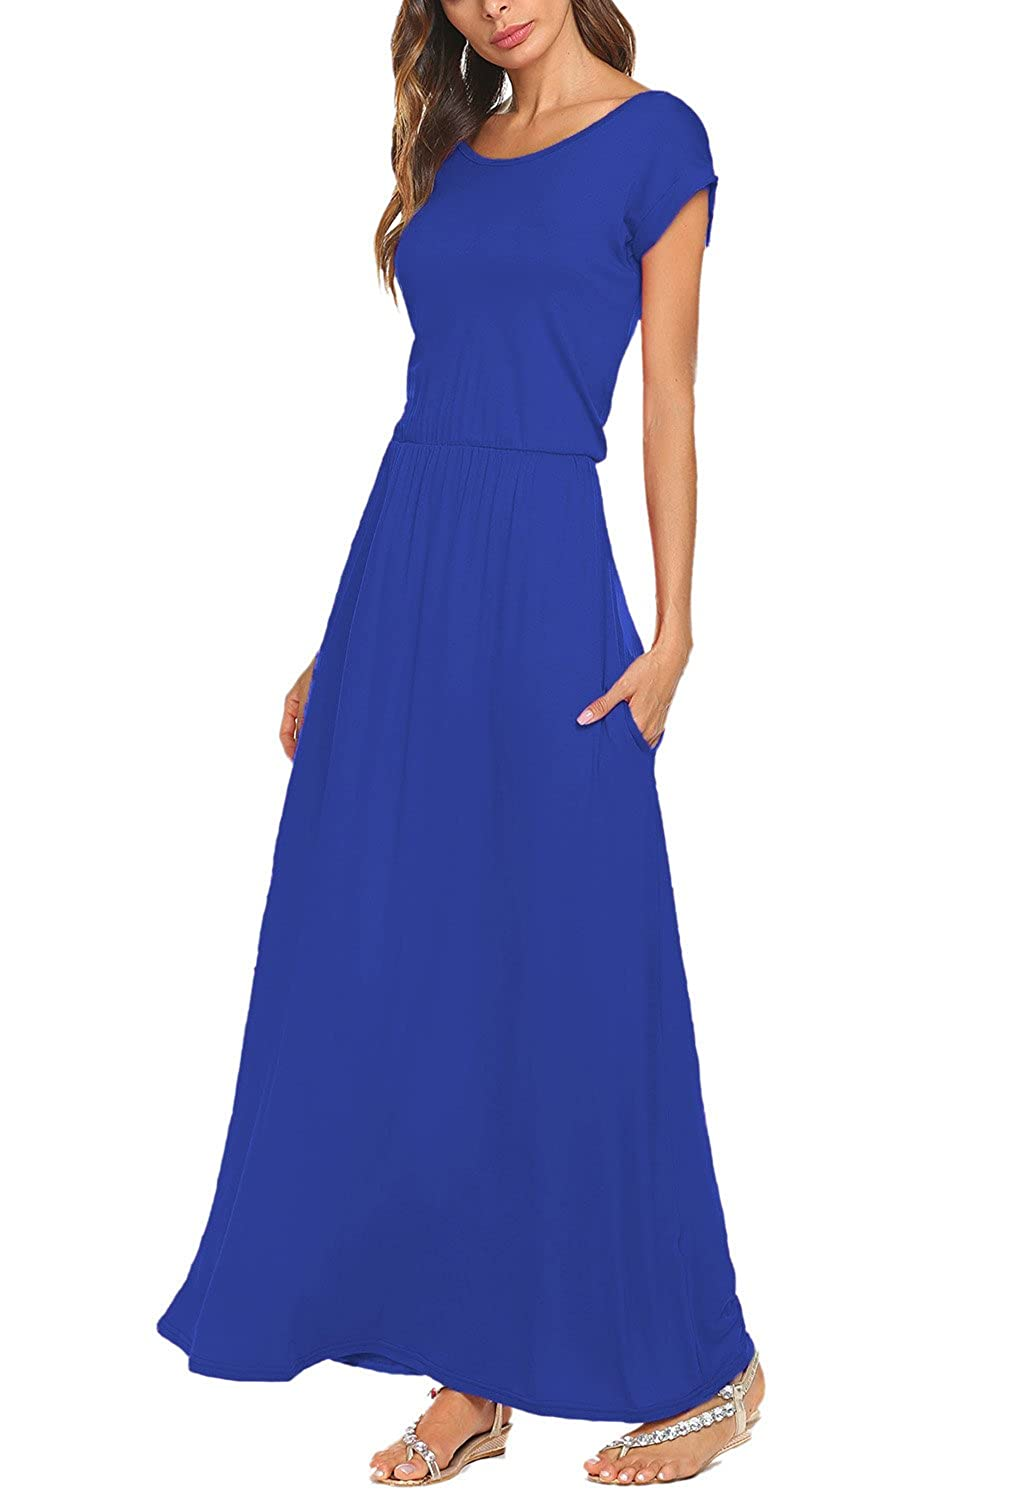 37620cf772 BLUETIME Women's Short Sleeve Maxi Dress with Pockets Plain Loose Pleated  Swing Casual Long Dresses at Amazon Women's Clothing store: